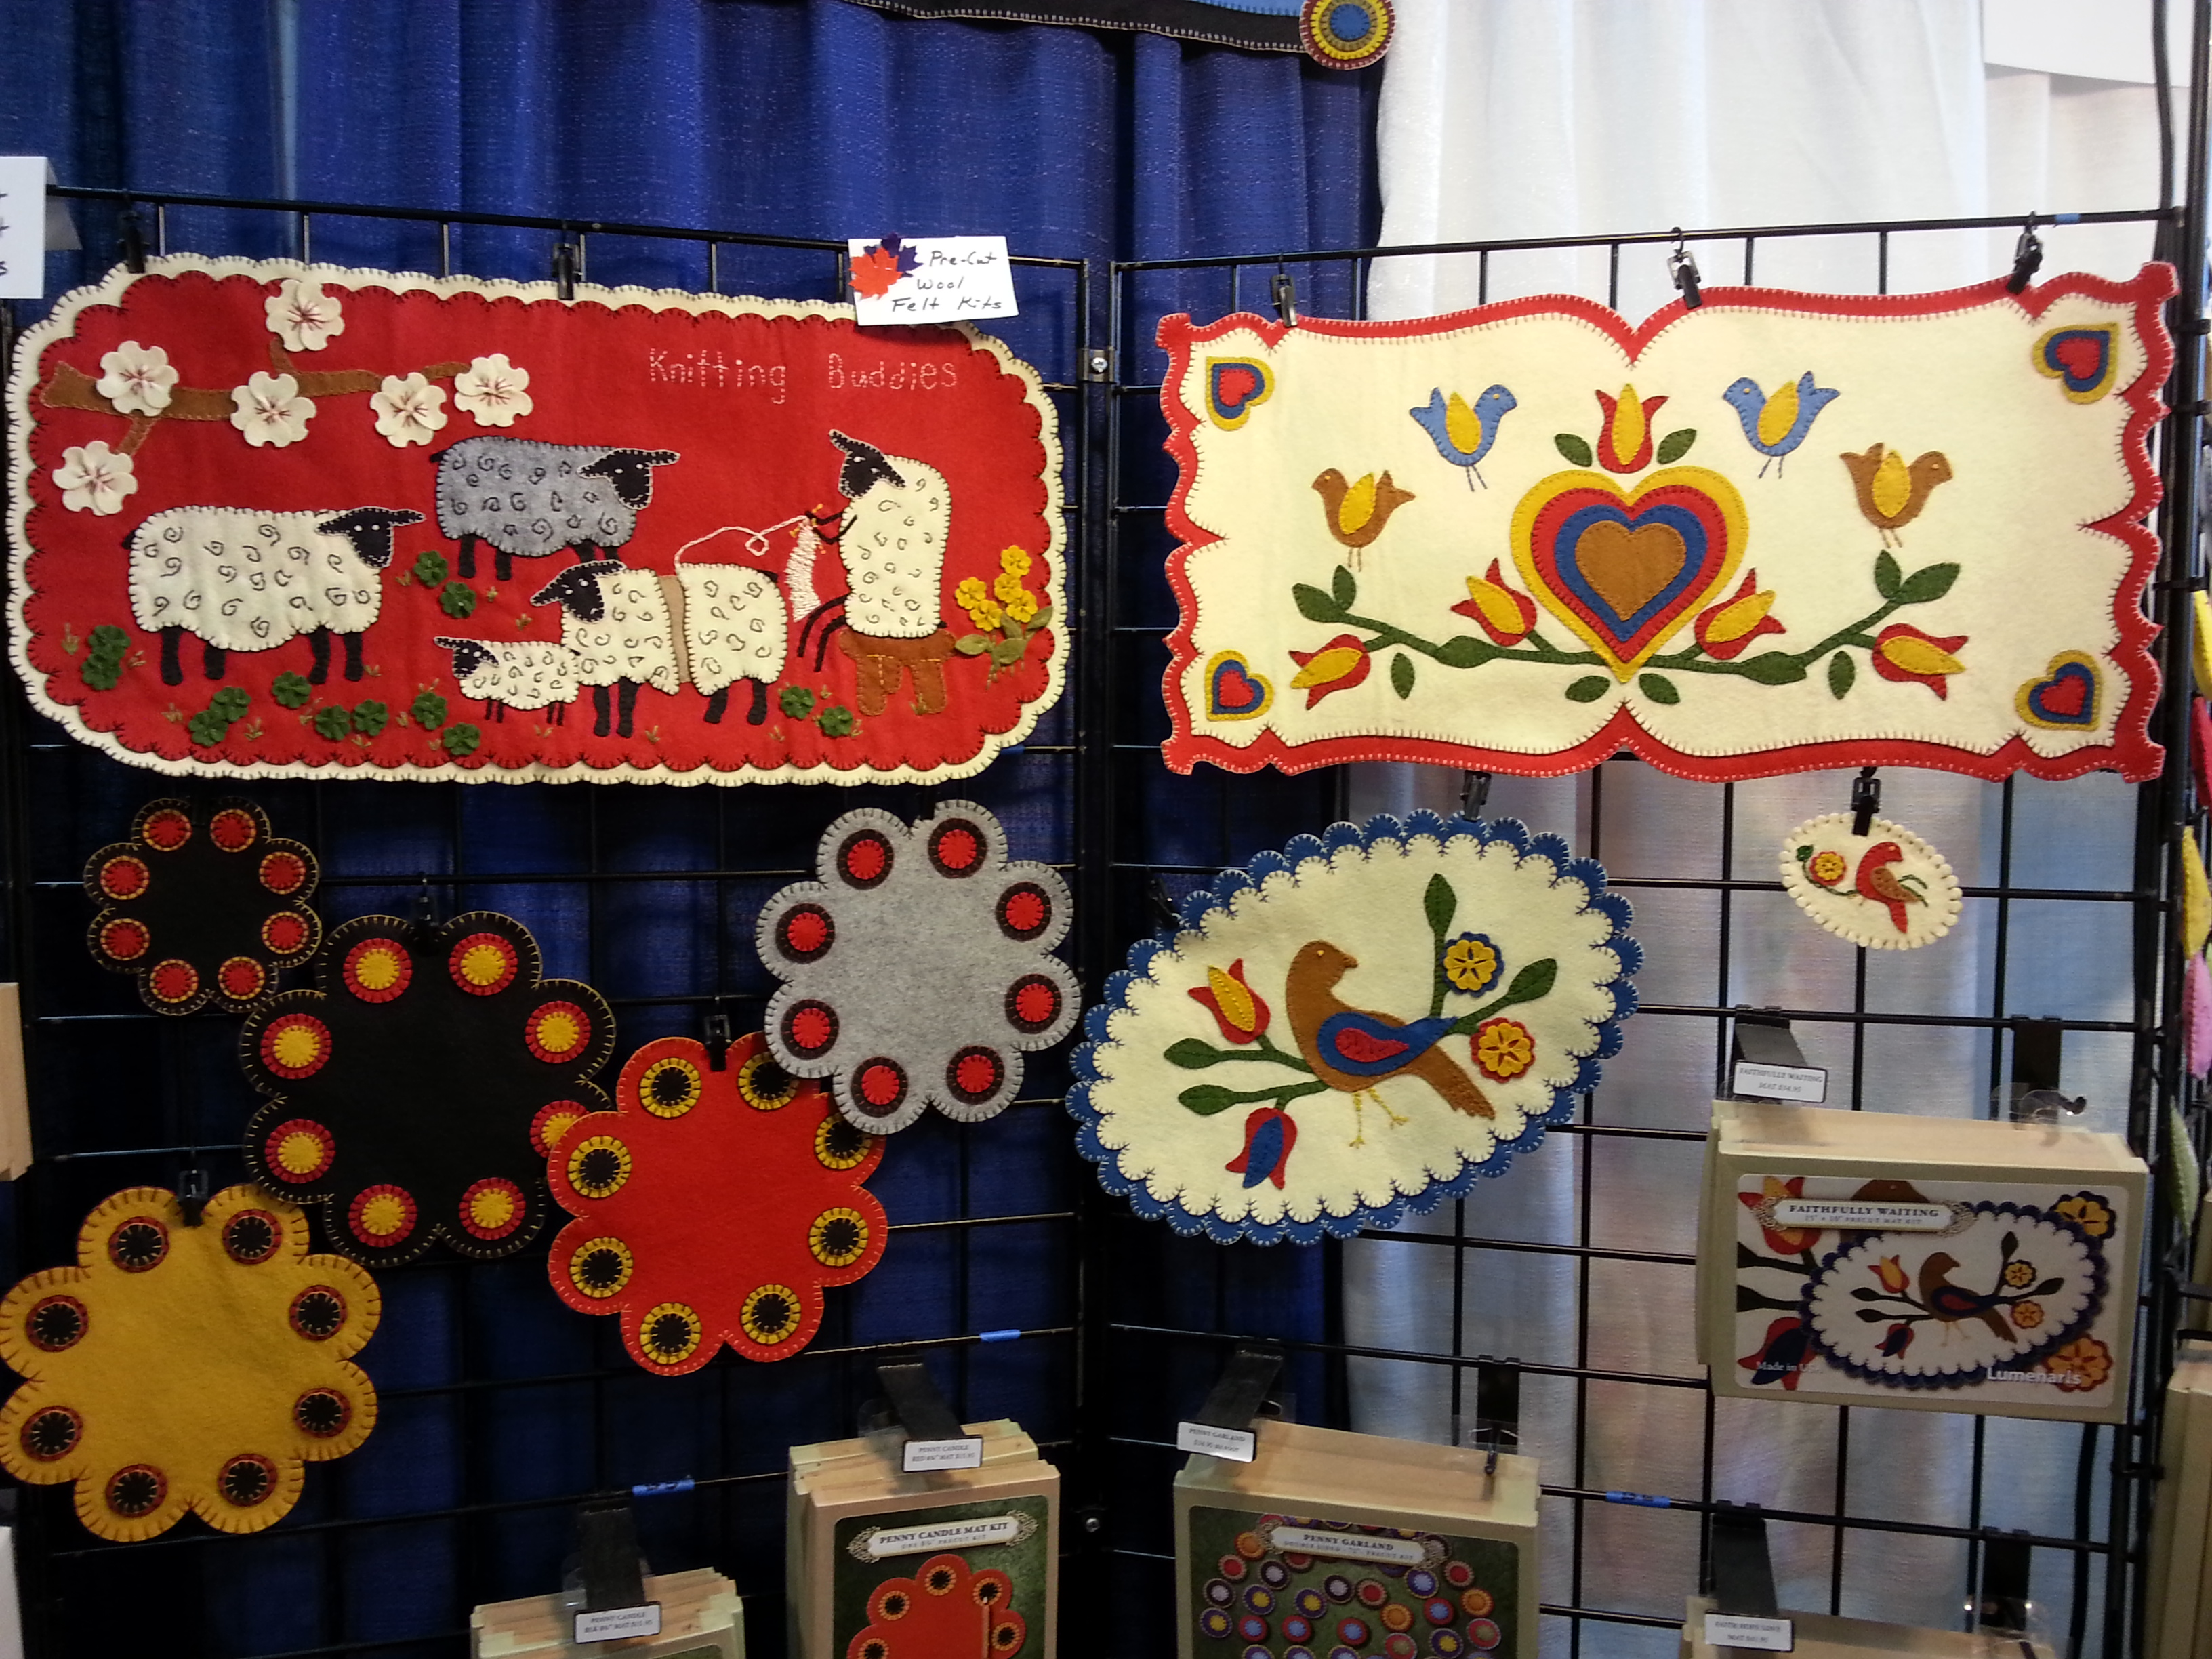 Sew Expo Puyallup II – Decorative felt kits | Dragonfly Quilts Blog : puyallup quilt show - Adamdwight.com